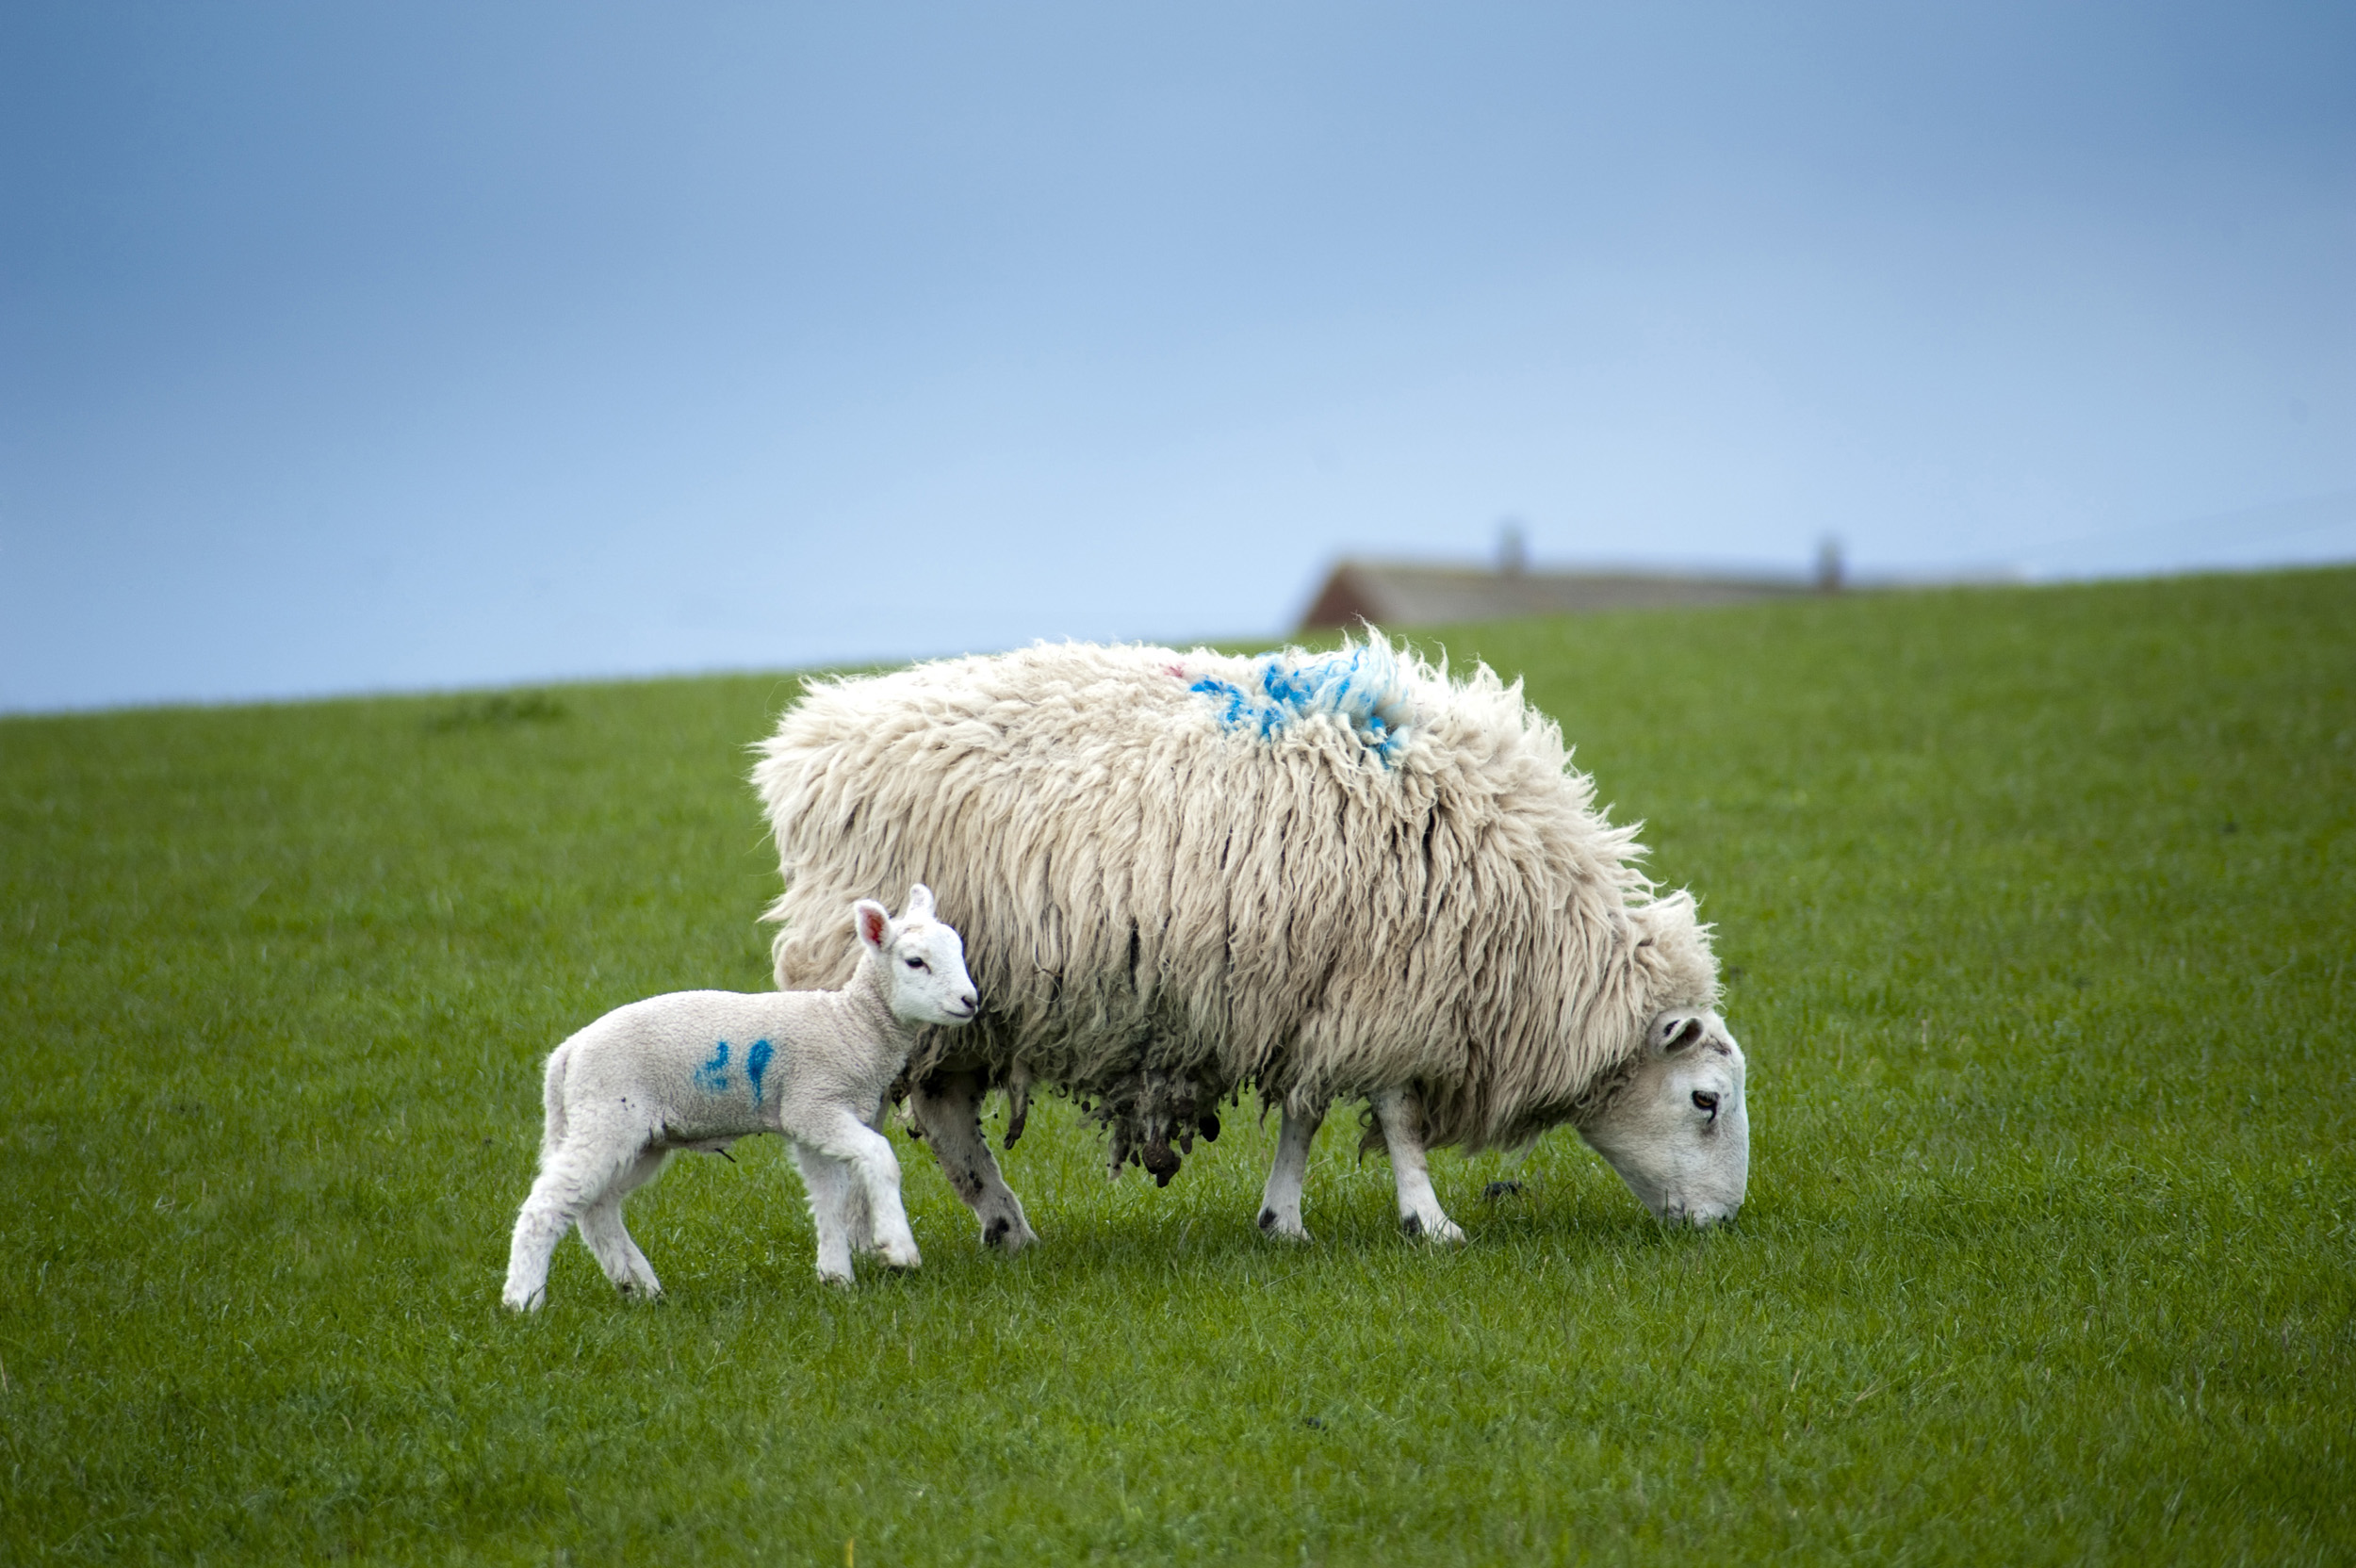 new_born_lamb.jpg - Woolly ewe with a heavy fleece grazing in a green pasture with her baby spring lamb